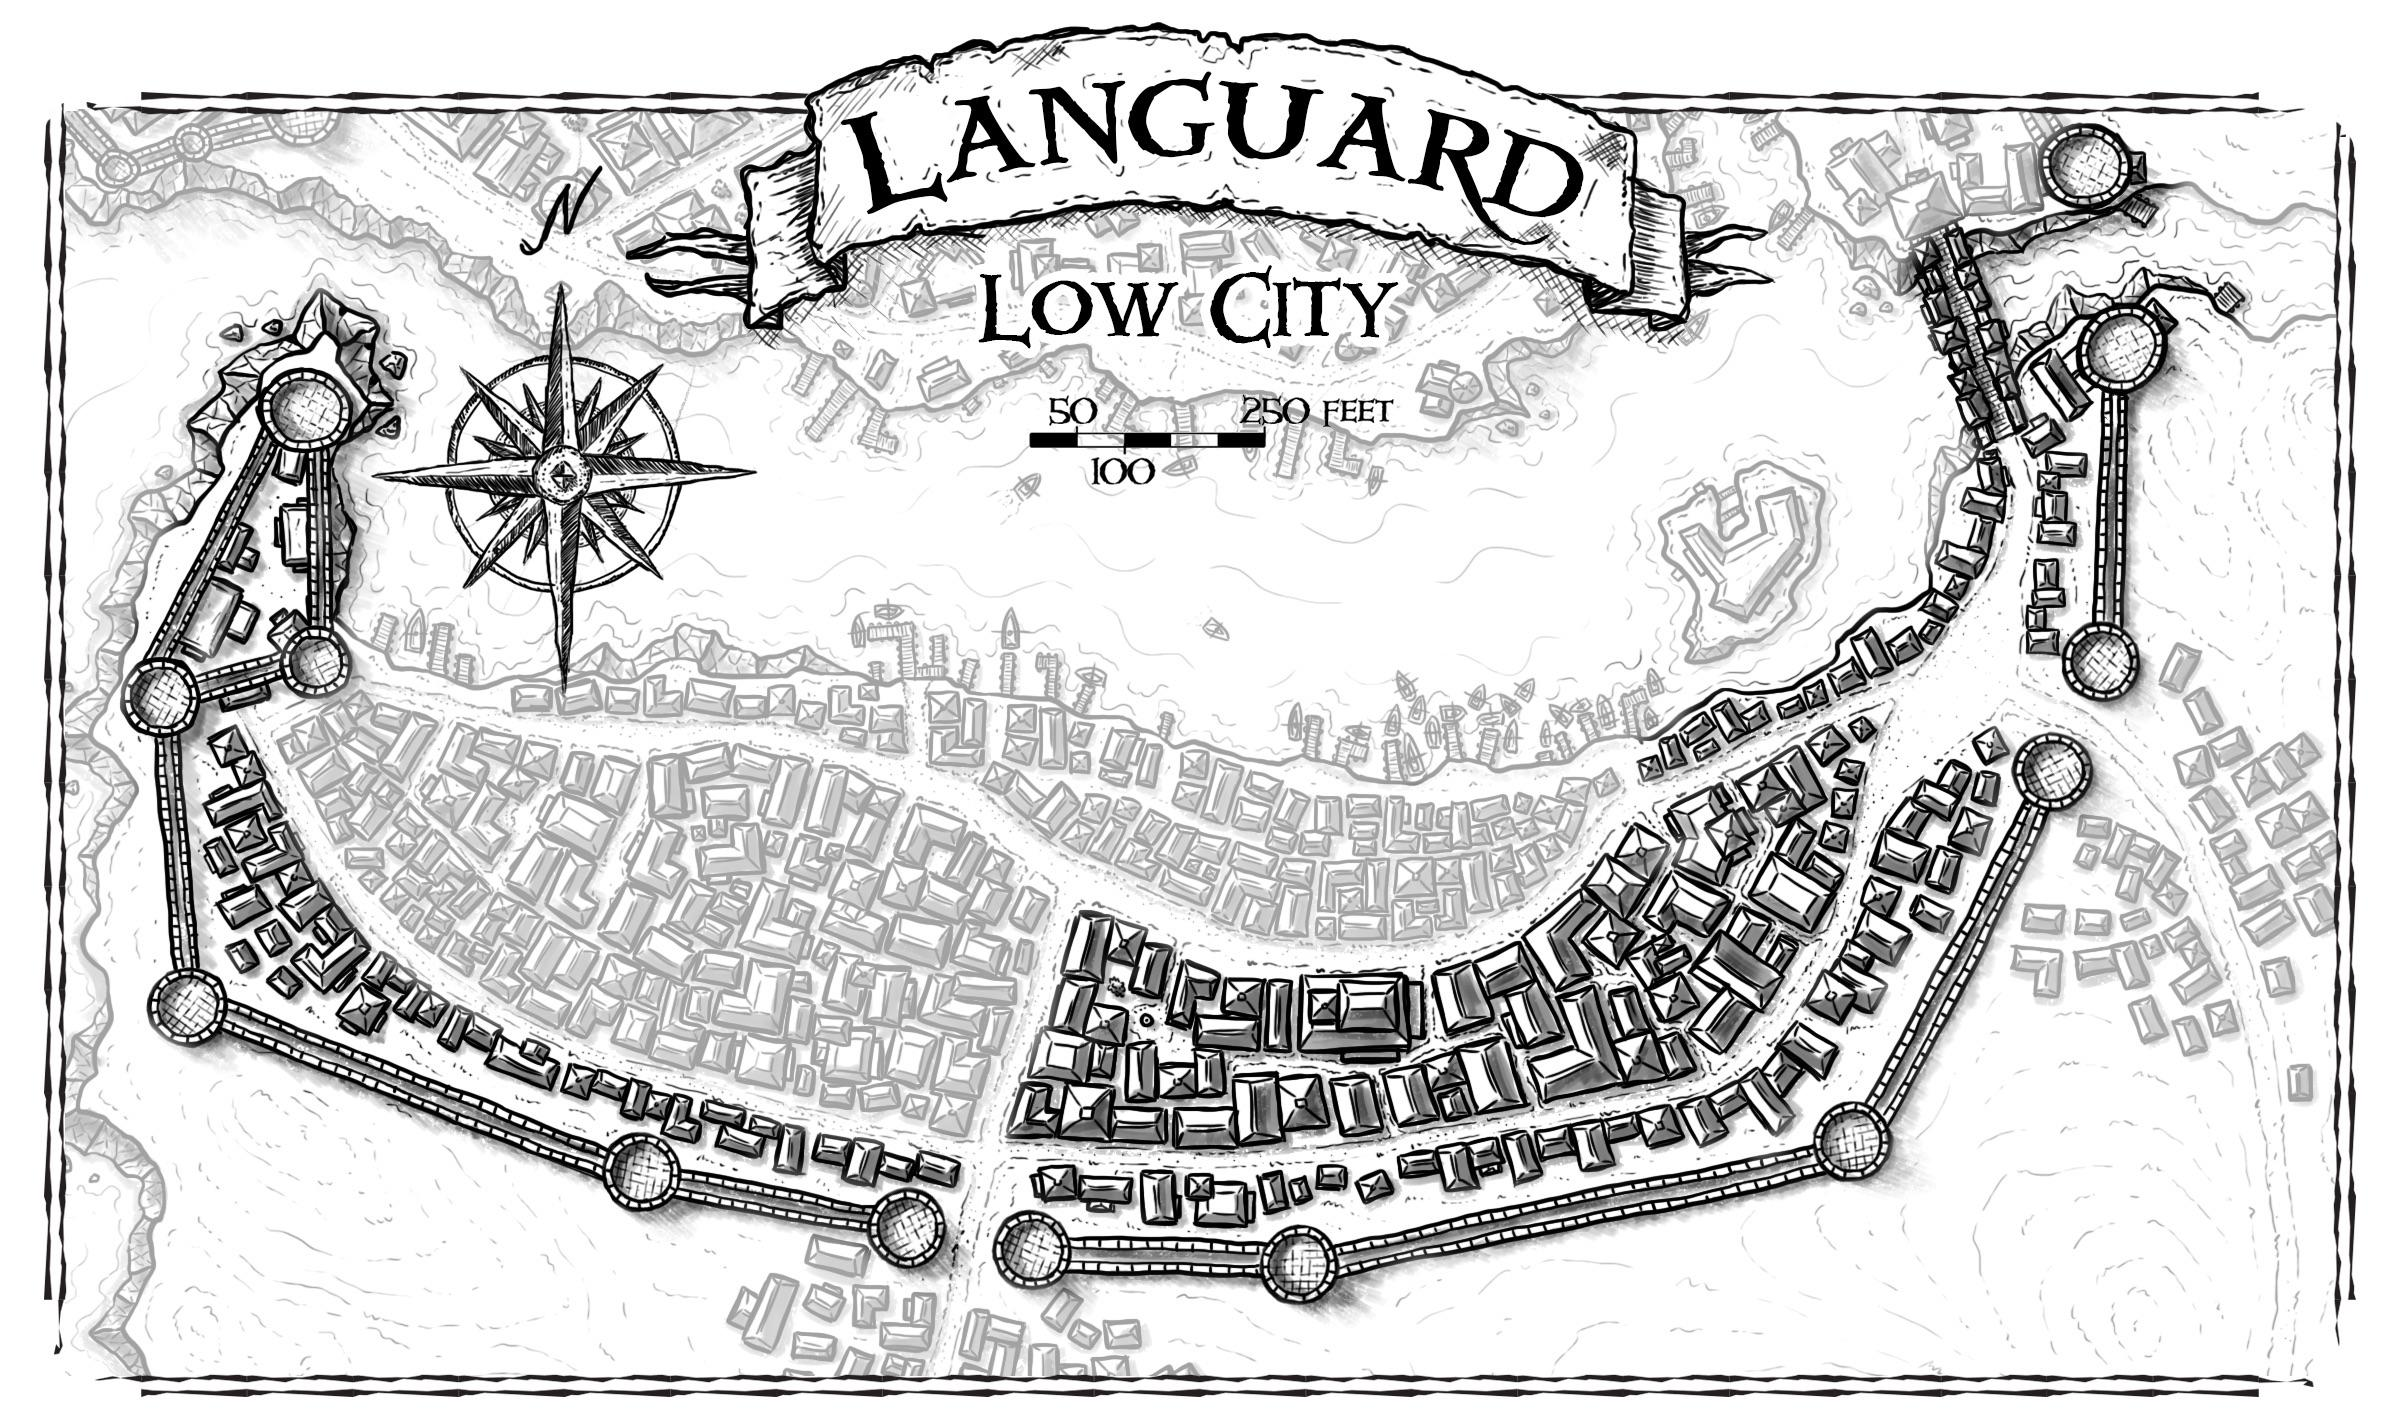 Languard_Low_City.jpg